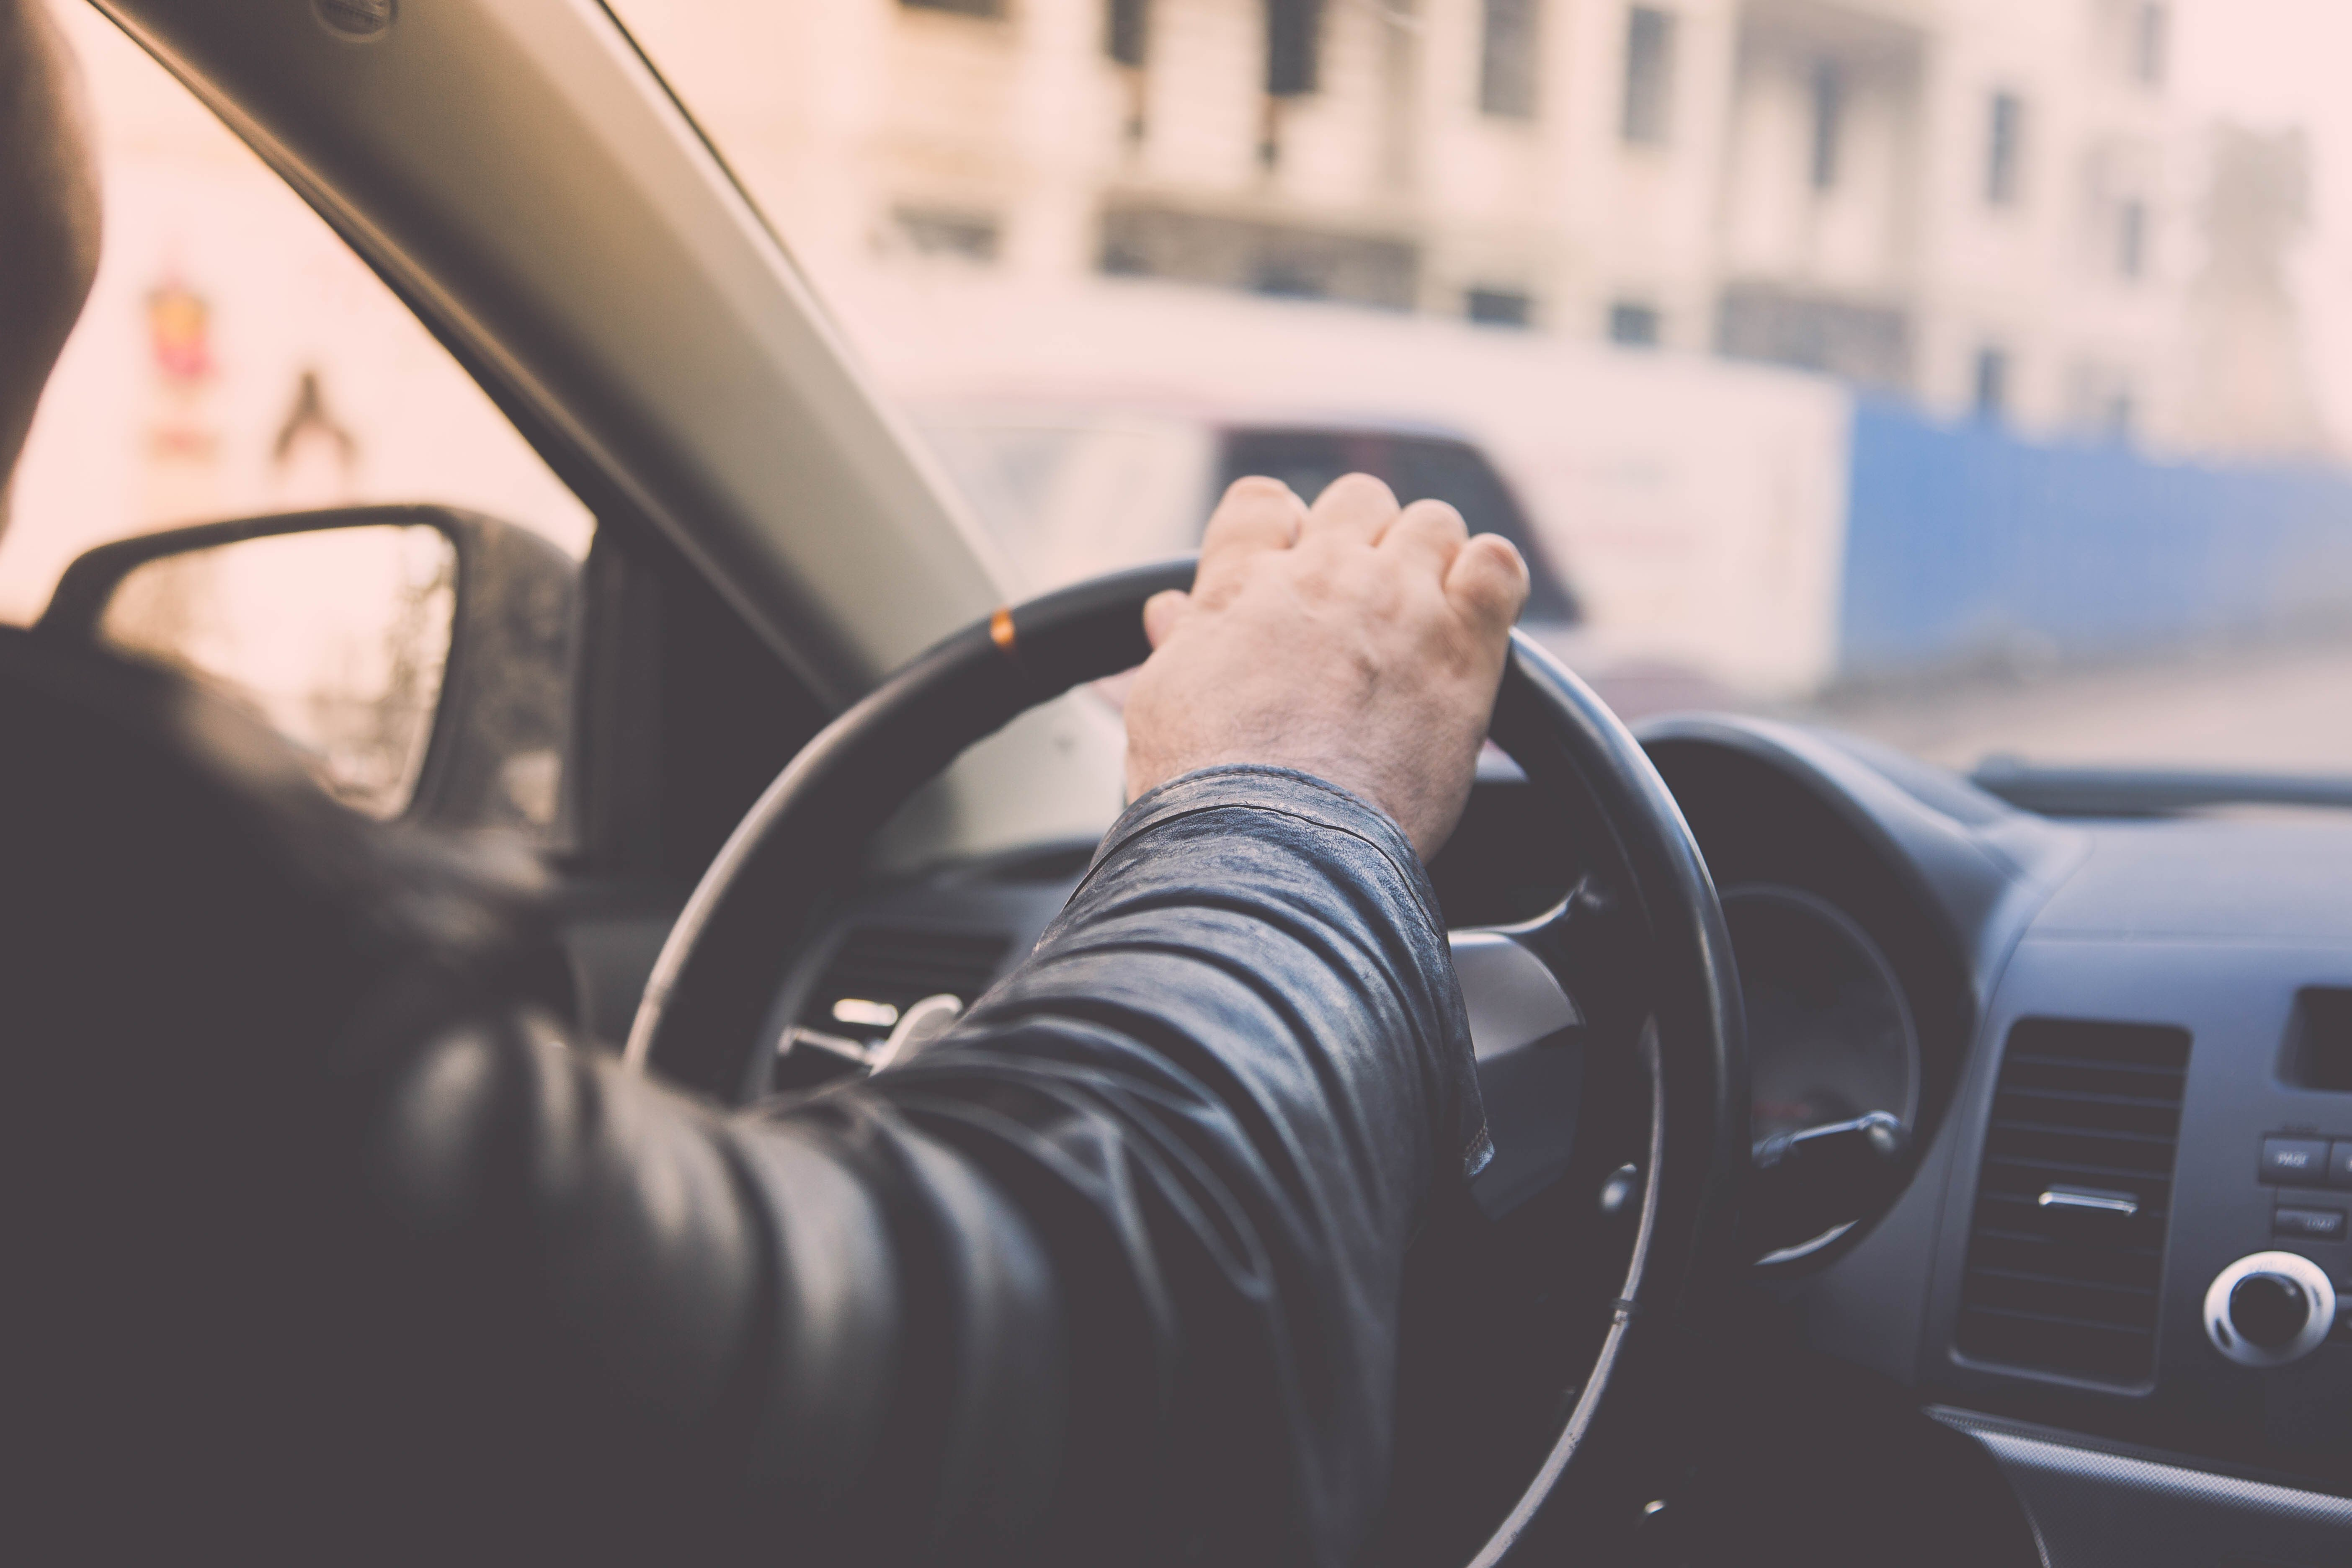 Taxi driver driving car, hand on steering wheel, looking at the road | Photo: Shutterstock.com